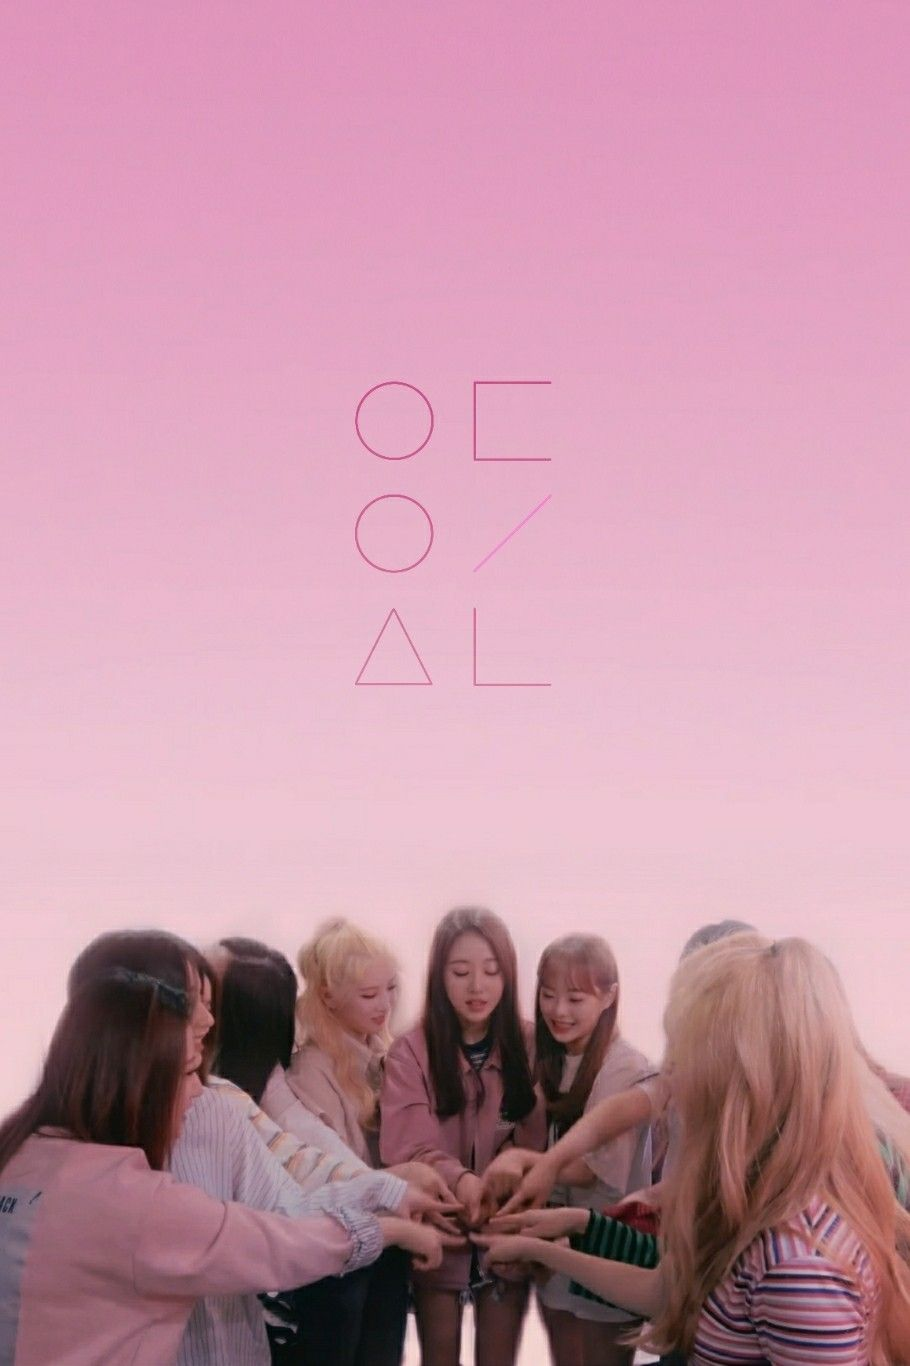 Loona background – The Best background in Los Angeles